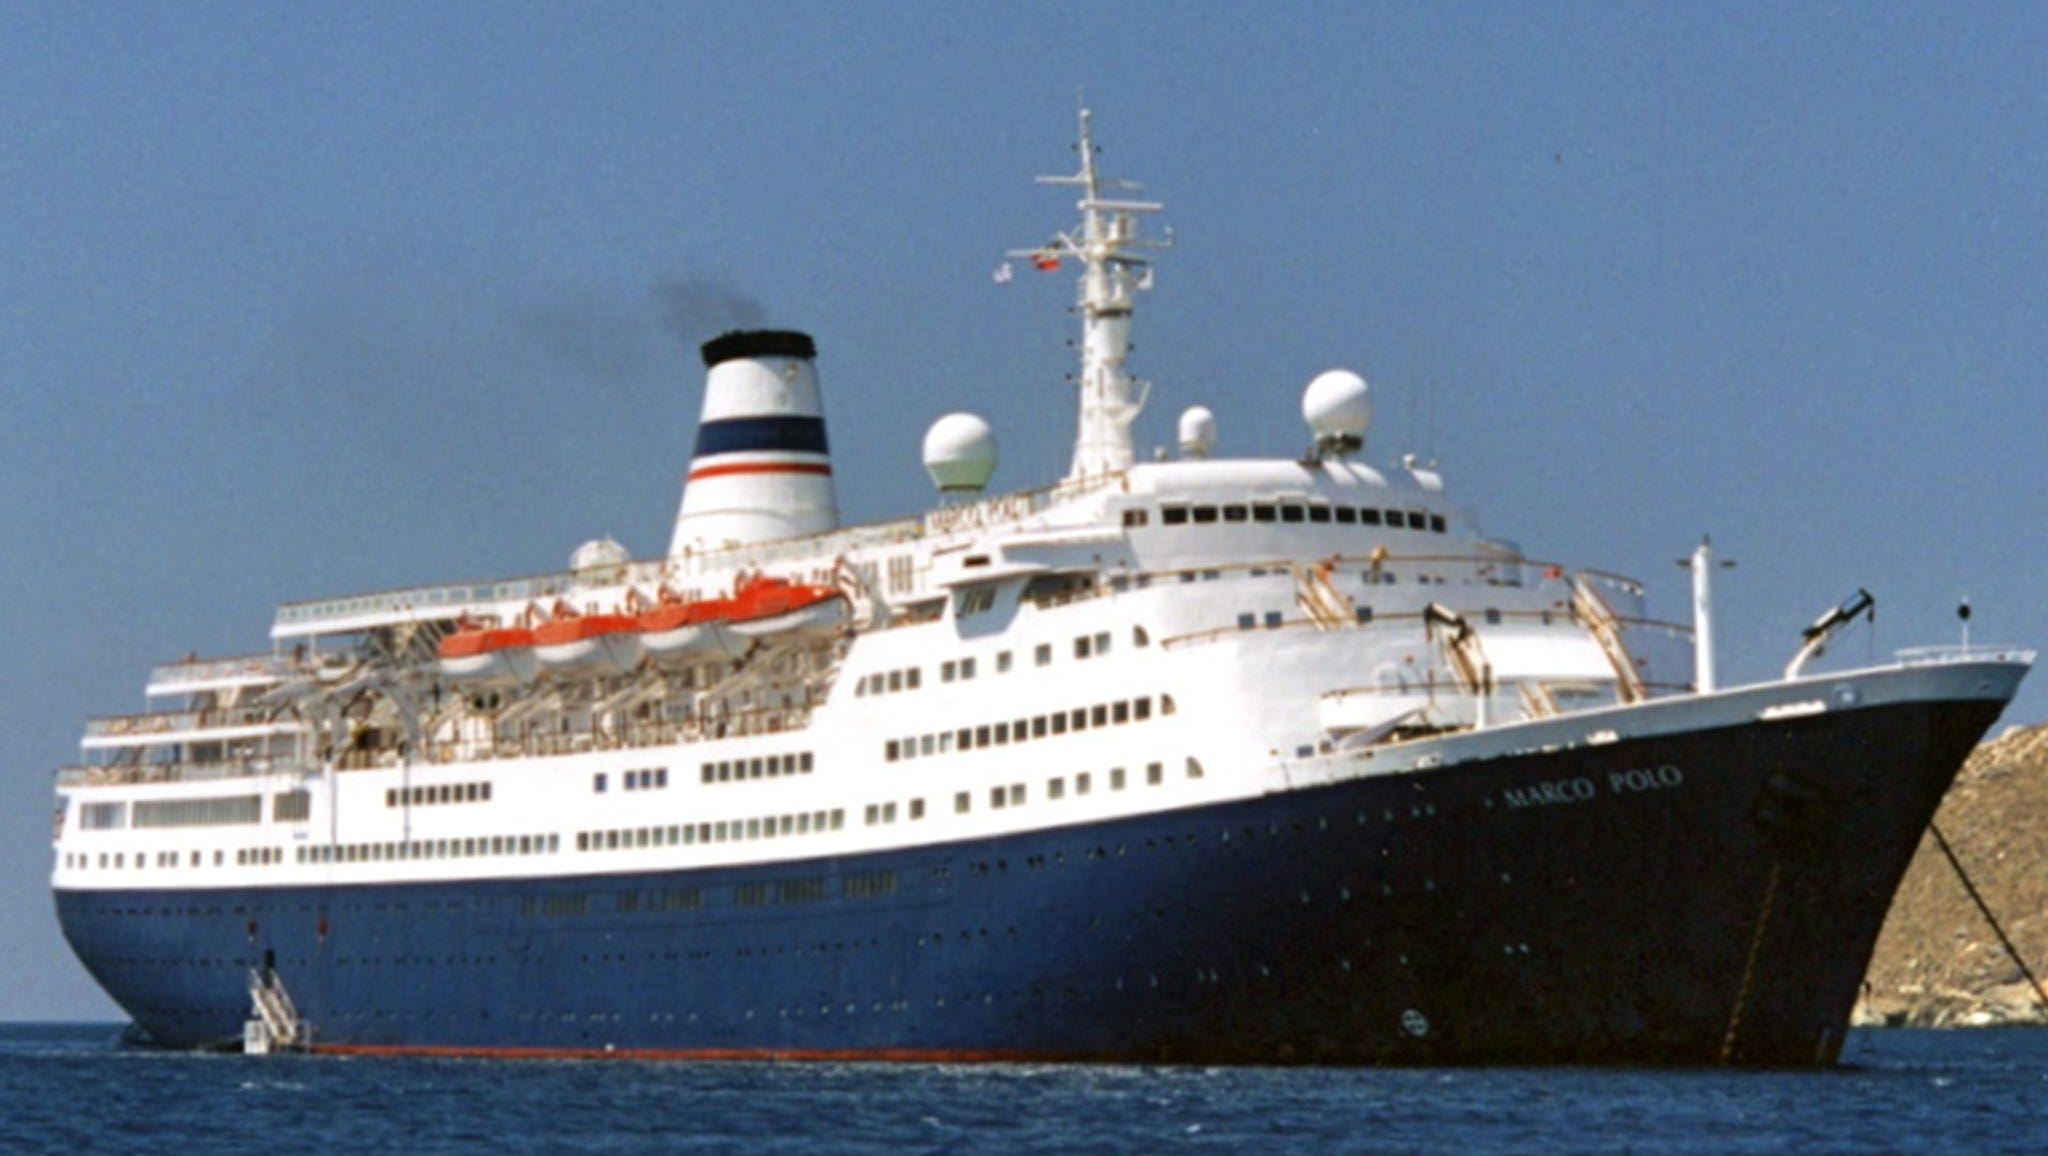 In 1990, the Alexandr Pushkin was laid up at Singapore and in 1991, it was purchased by adventure-travel entrepreneur Gerry Herrod for his newly-formed Orient Lines and completely rebuilt in Greece, emerging in 1993 as the Marco Polo.